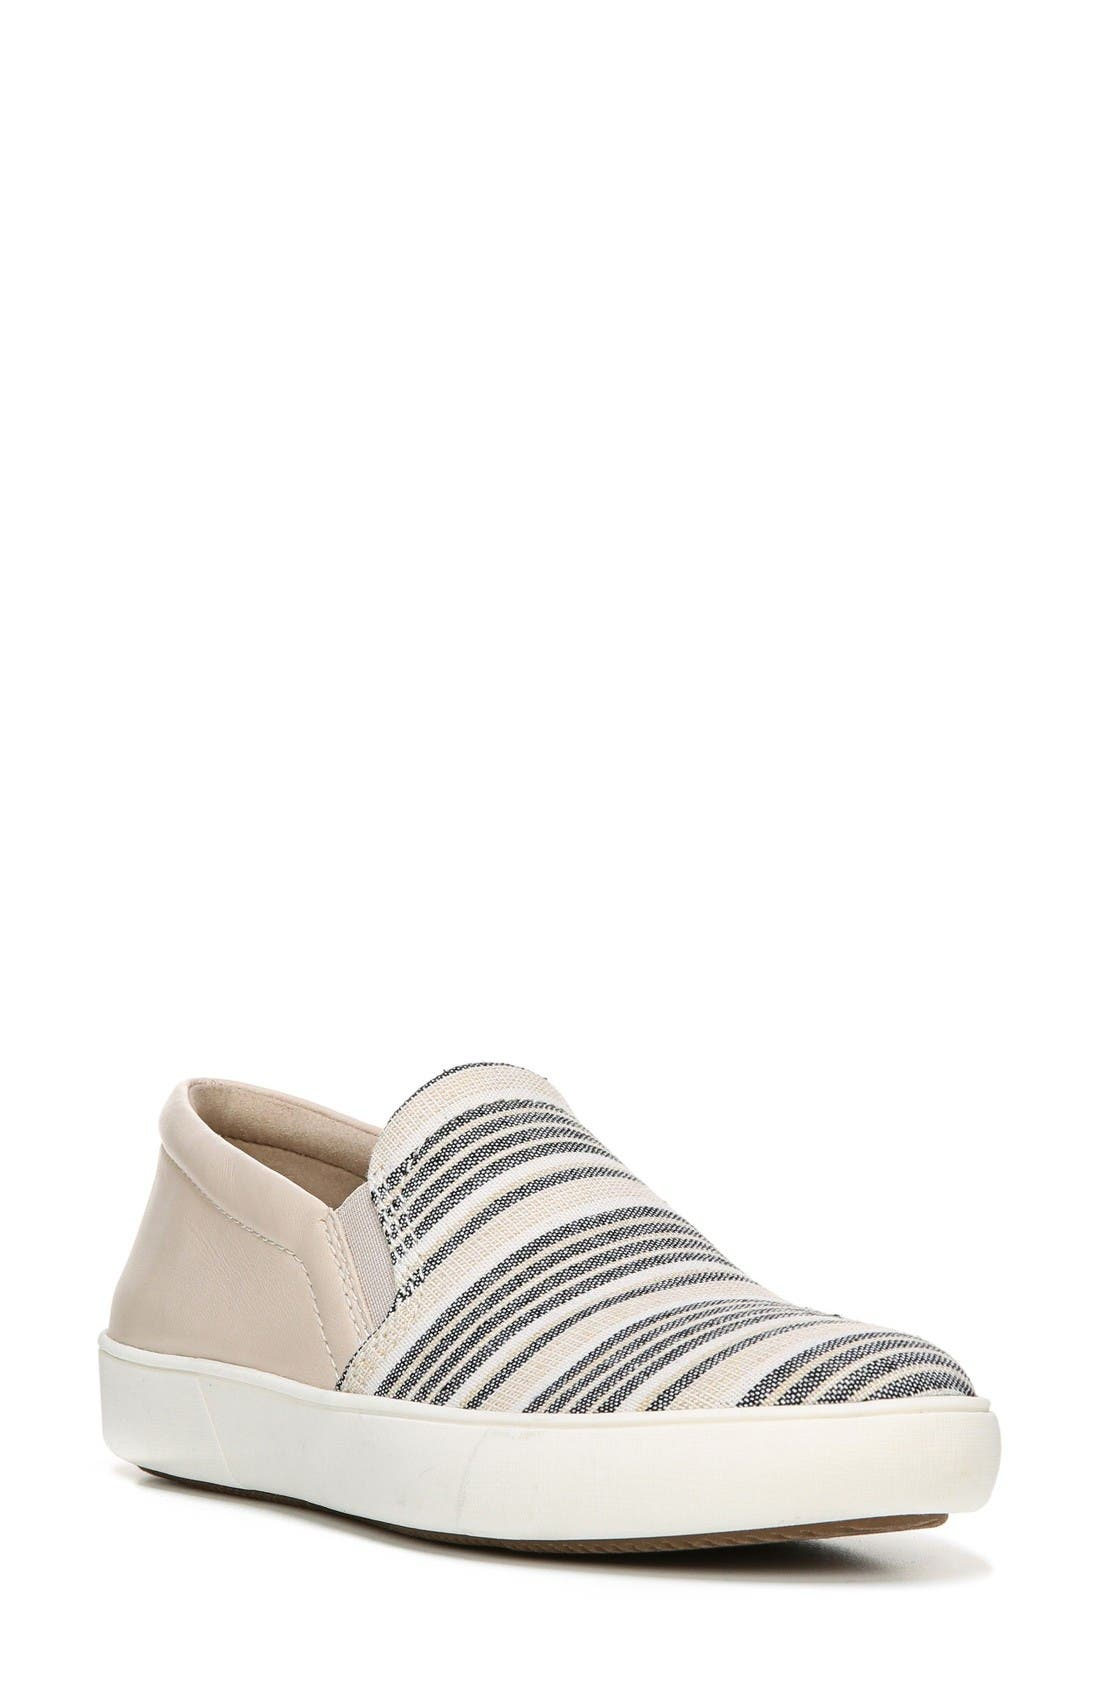 Naturalizer Marianne Slip-On Sneaker (Women)